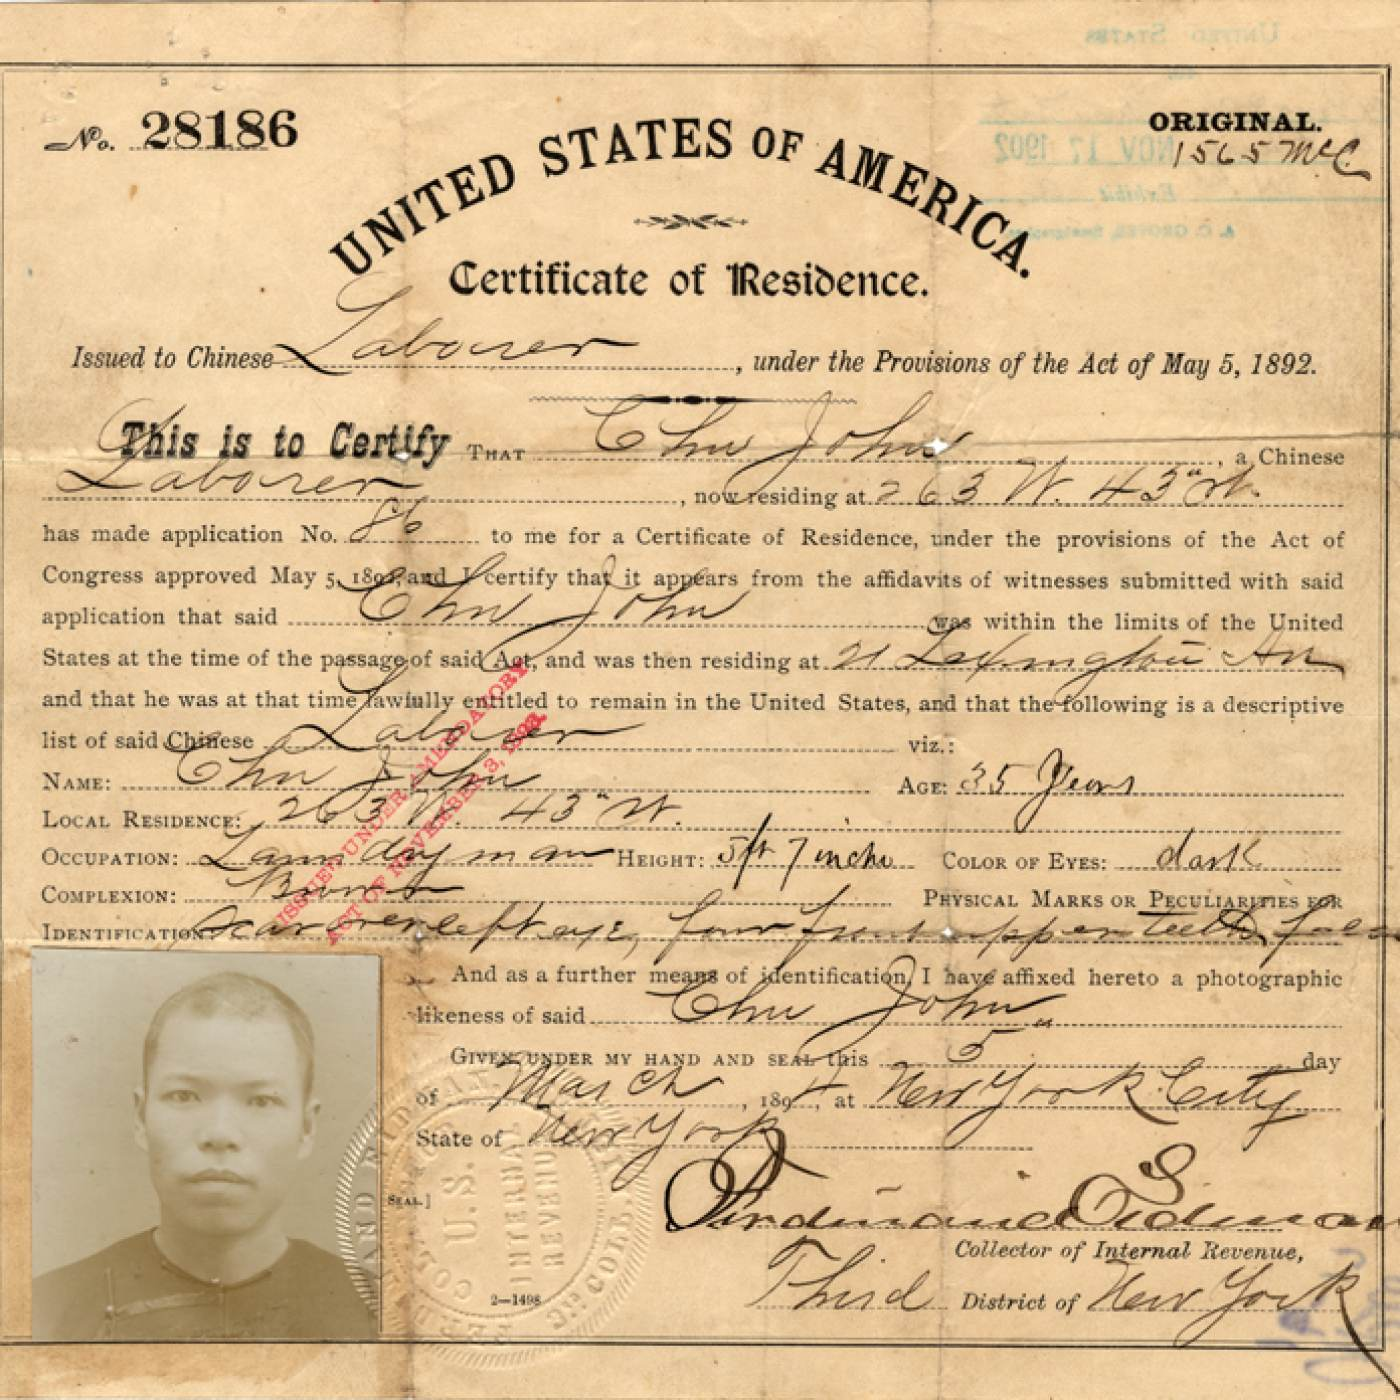 09 April 2019 Posted. John Chu's Certificate of Residence. Courtesy of Douglas J. Chu, Museum of Chinese in America (MOCA) Collection. John Chu的居住证。Douglas J. Chu捐赠,美国华人博物馆(MOCA)馆藏